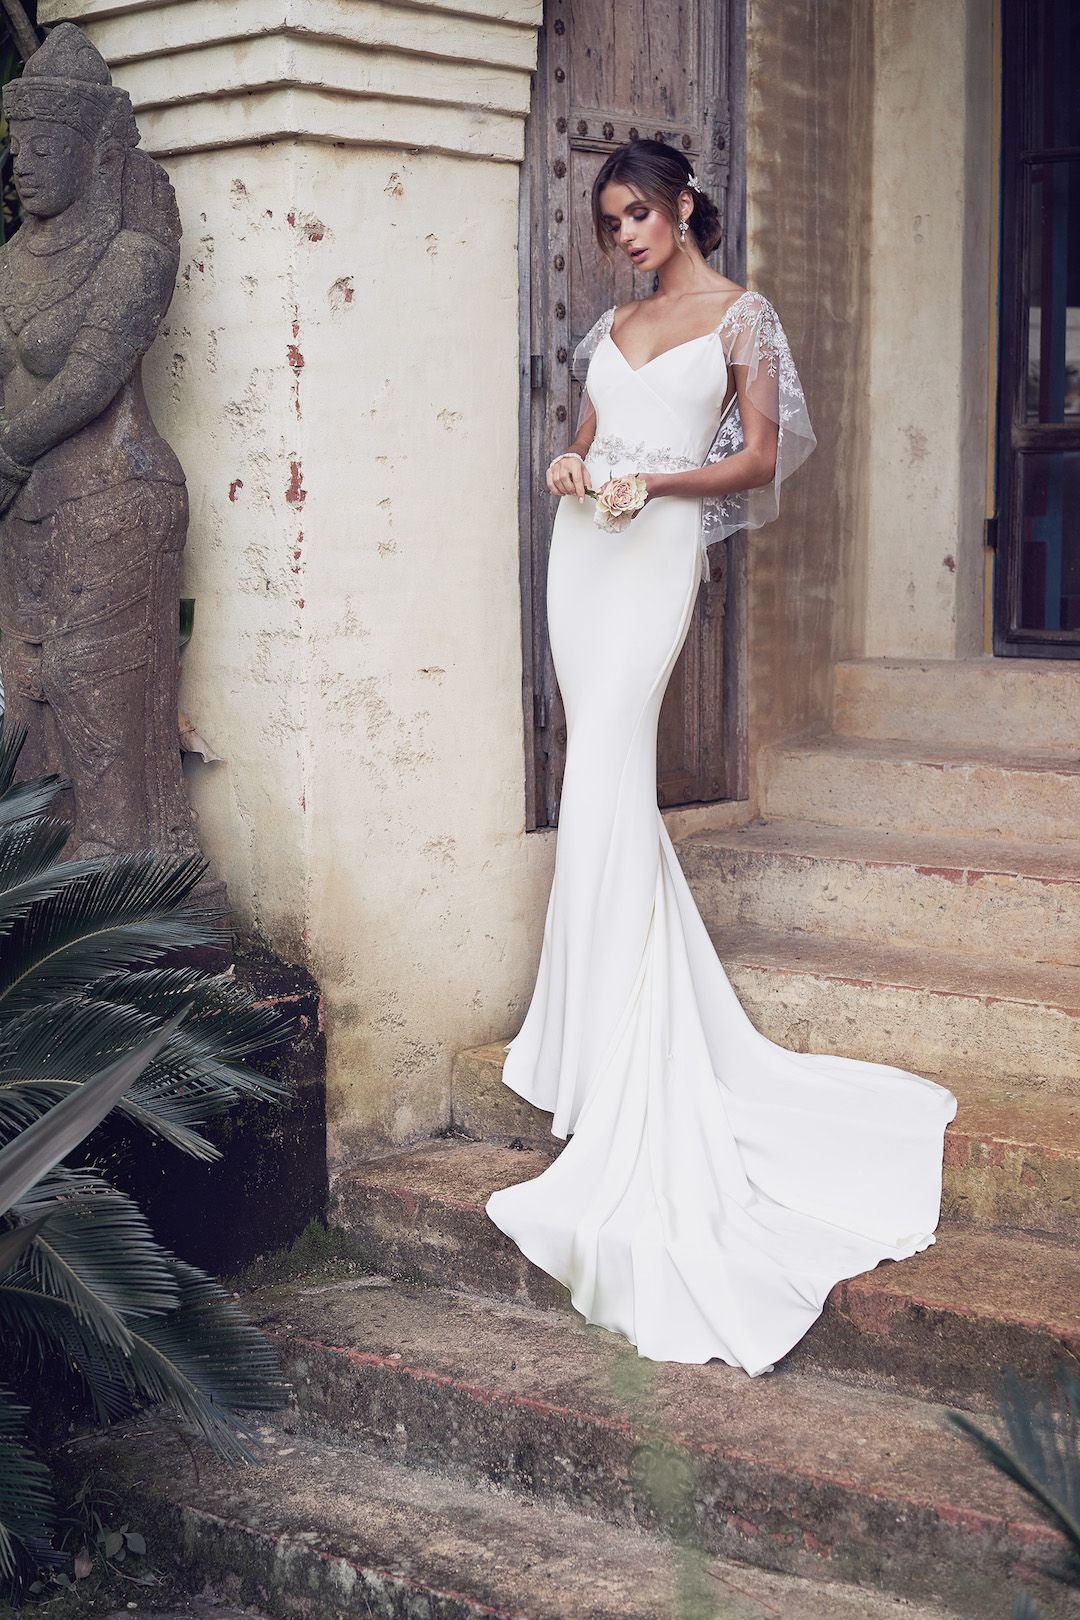 c77f7f0ace12 The New Anna Campbell Wedding Dress Collection is So Gorgeous! |  OneFabDay.com Ireland